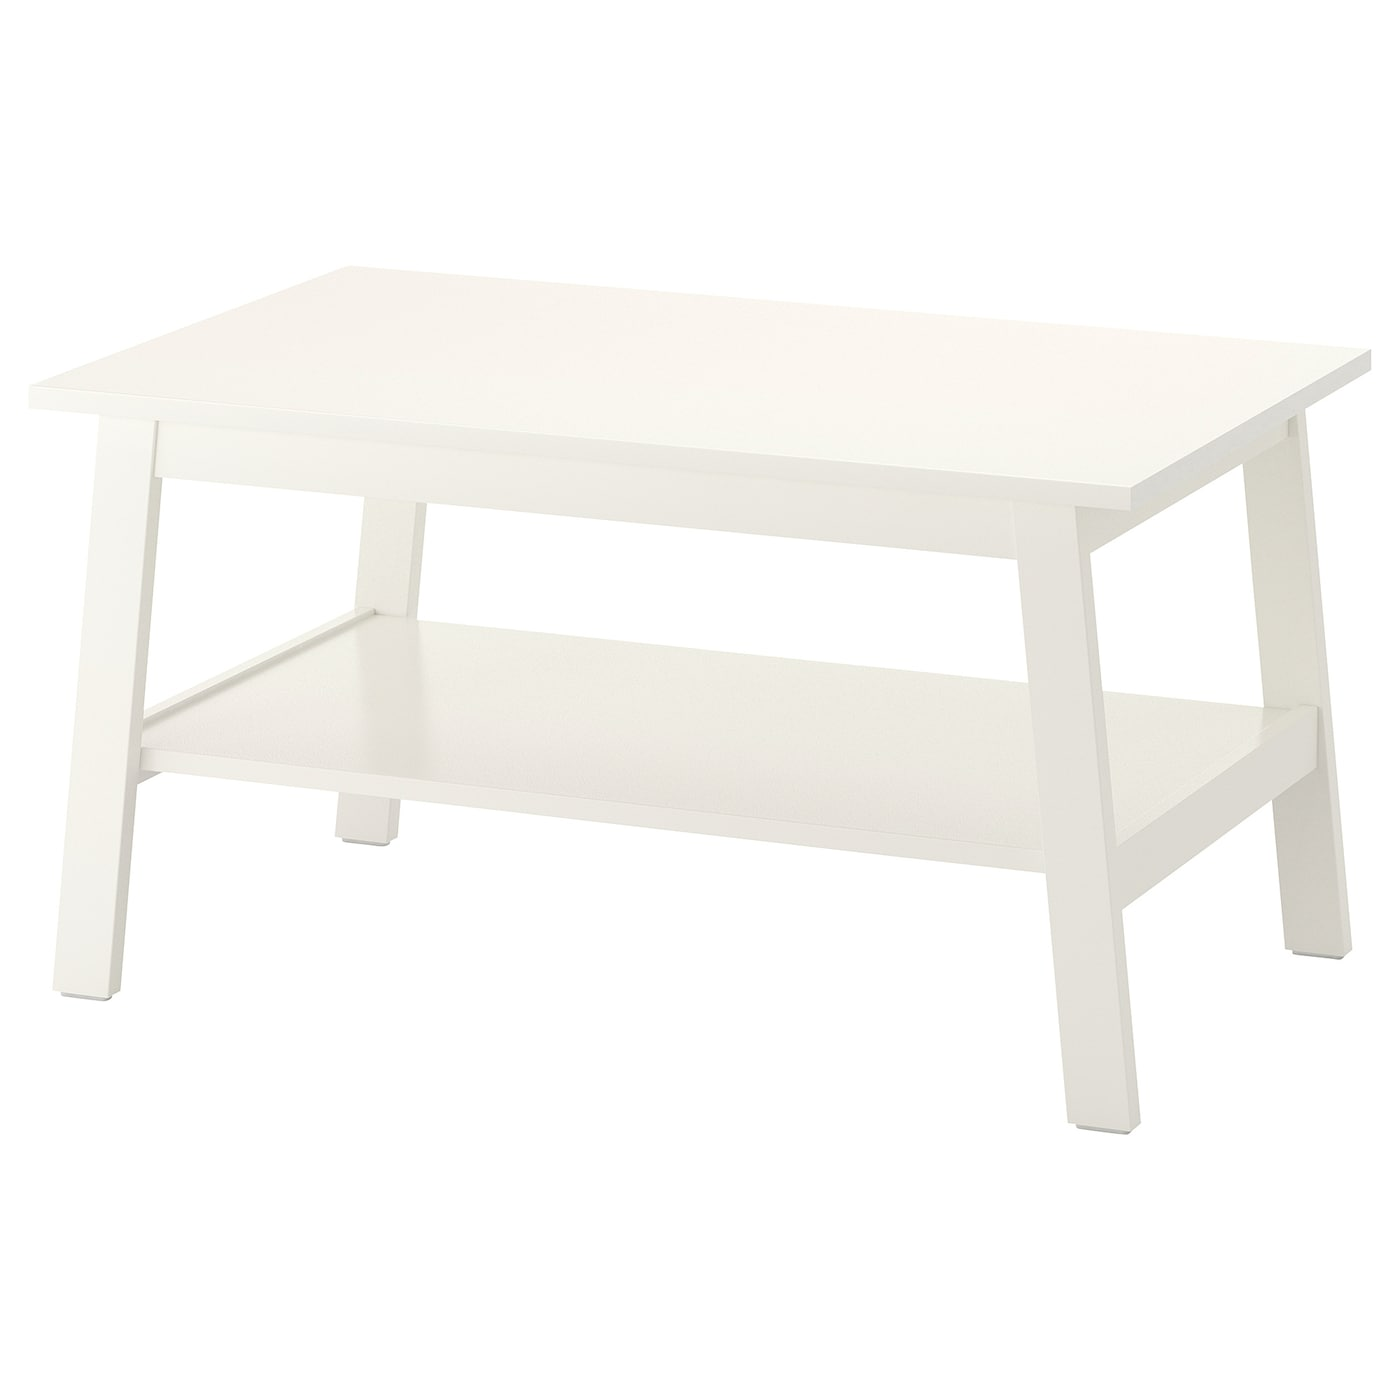 IKEA LUNNARP coffee table Neutral design that is easy to combine and complement.